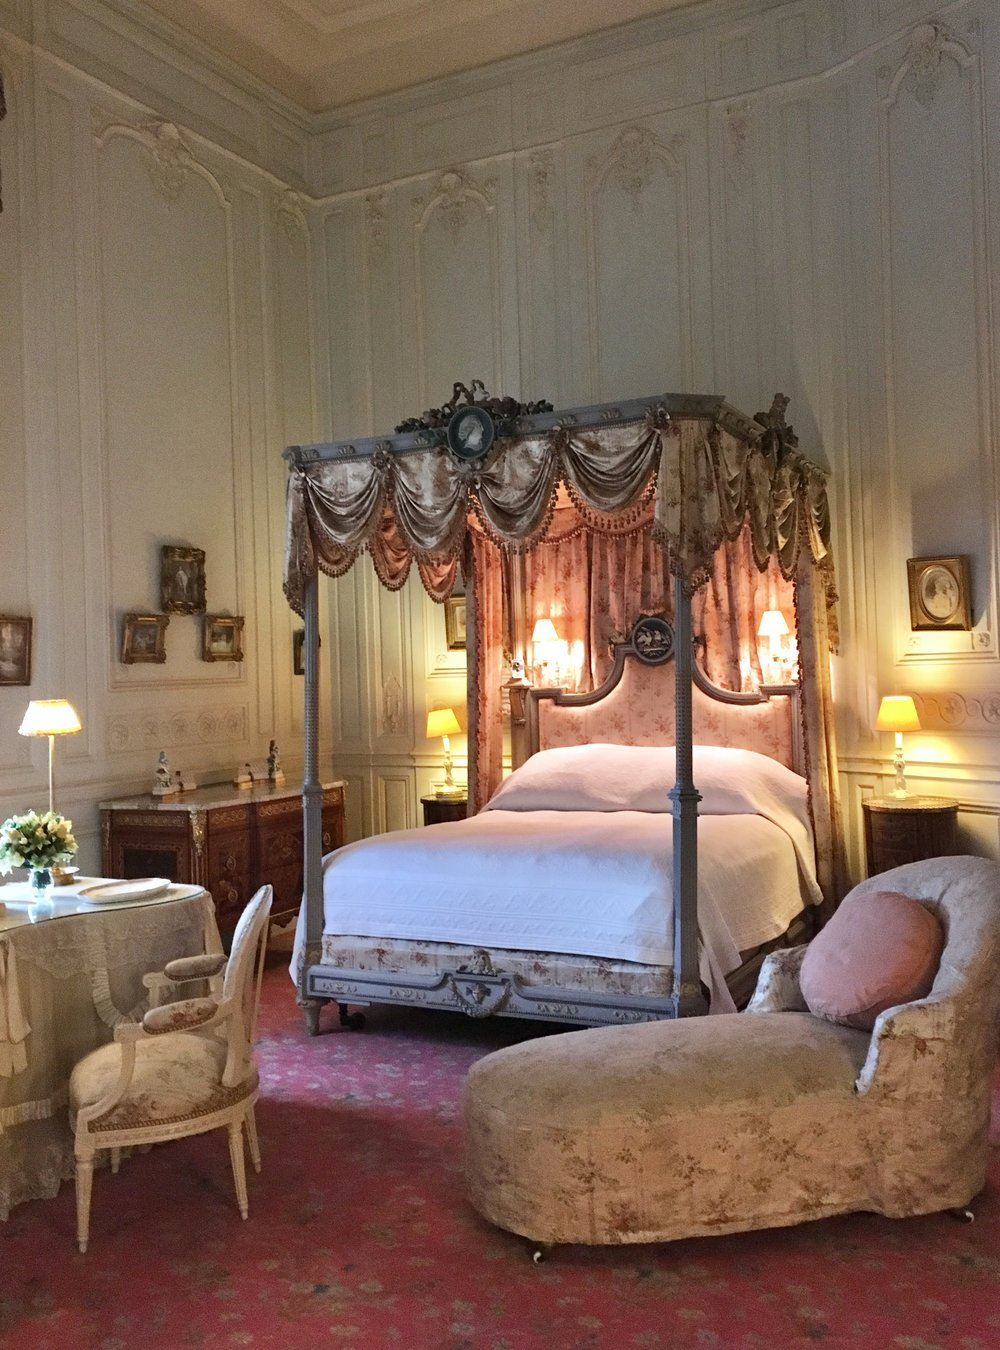 UK Waddesdon Manor architecture churchill bedroom National Trust French Chateau Rothschild Buckinghamshire garden chateau Eileen Hsieh Follow That Bug 2.jpg